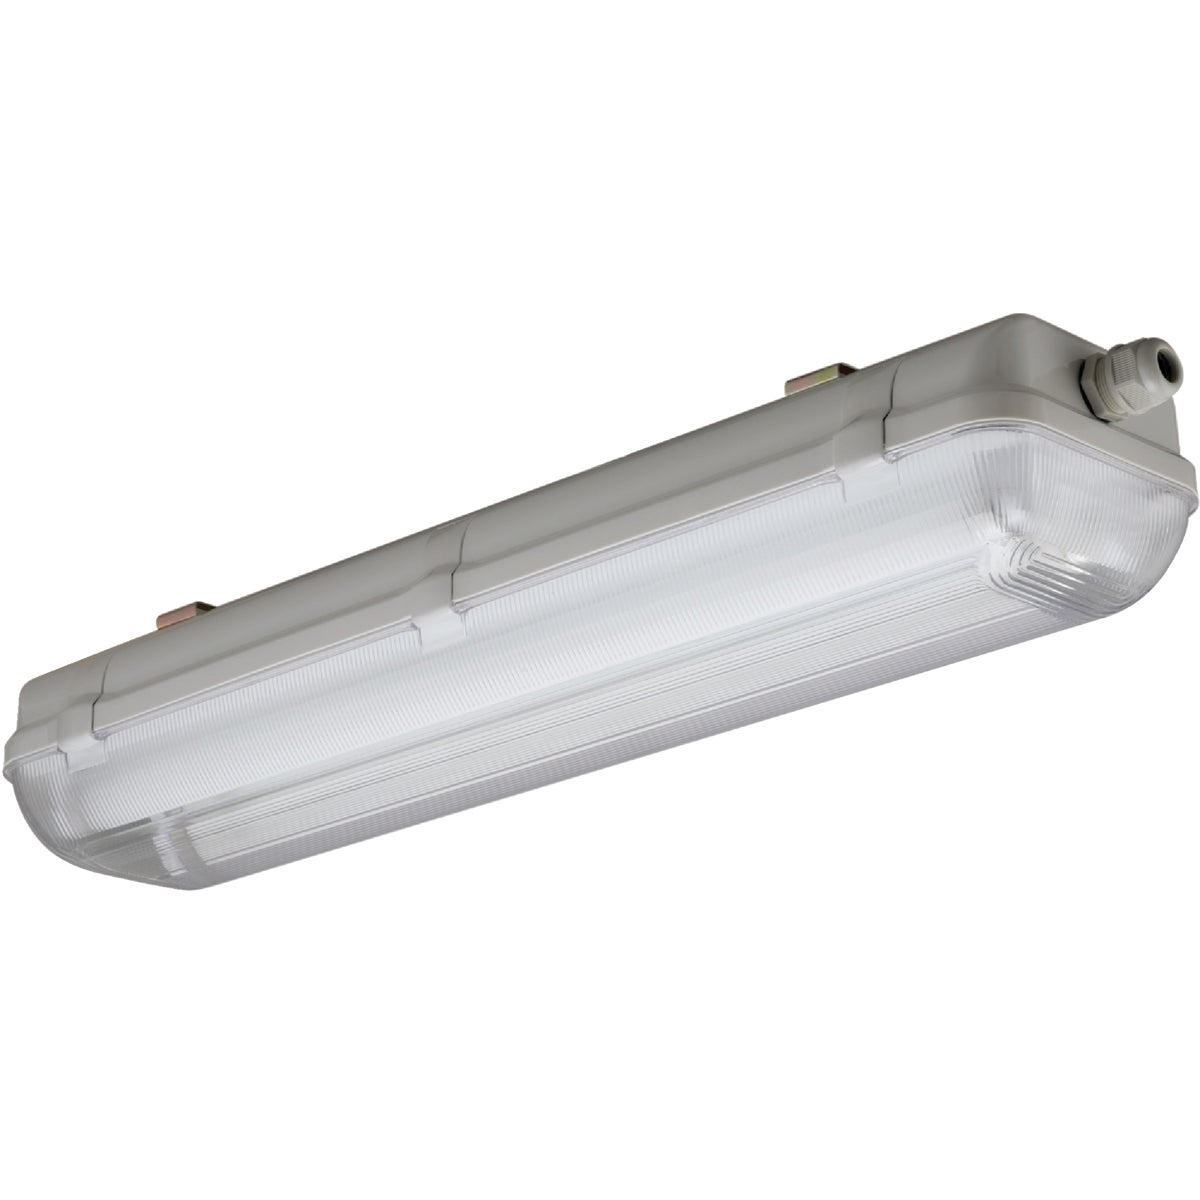 4' T8 2BULB ENCL FIXTURE - XWL 232 120 RE by Lithonia Lighting